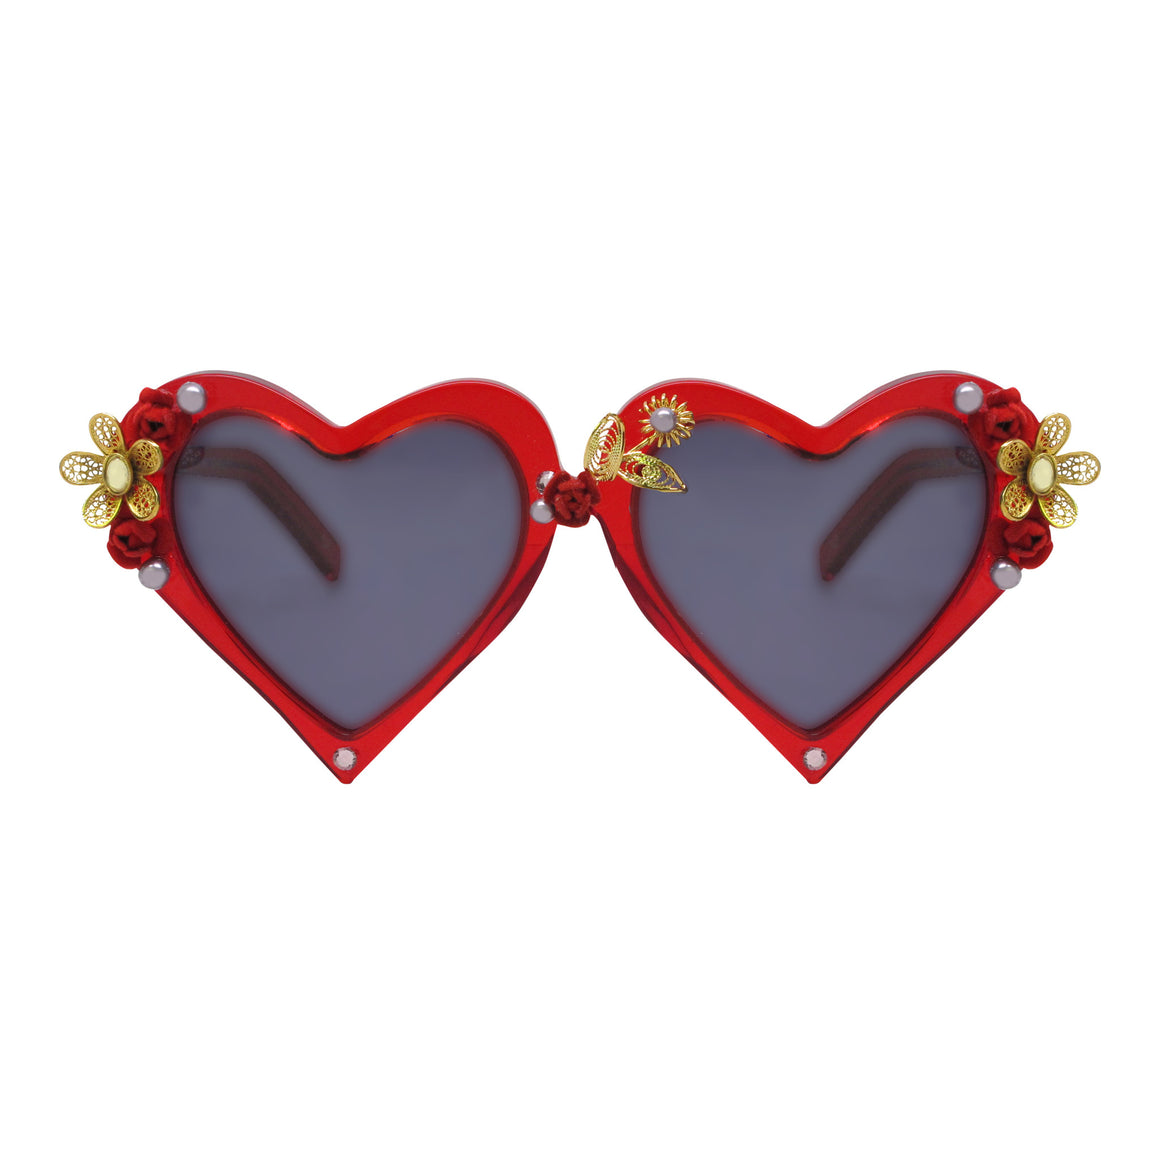 Corin red heart shaped sunnies